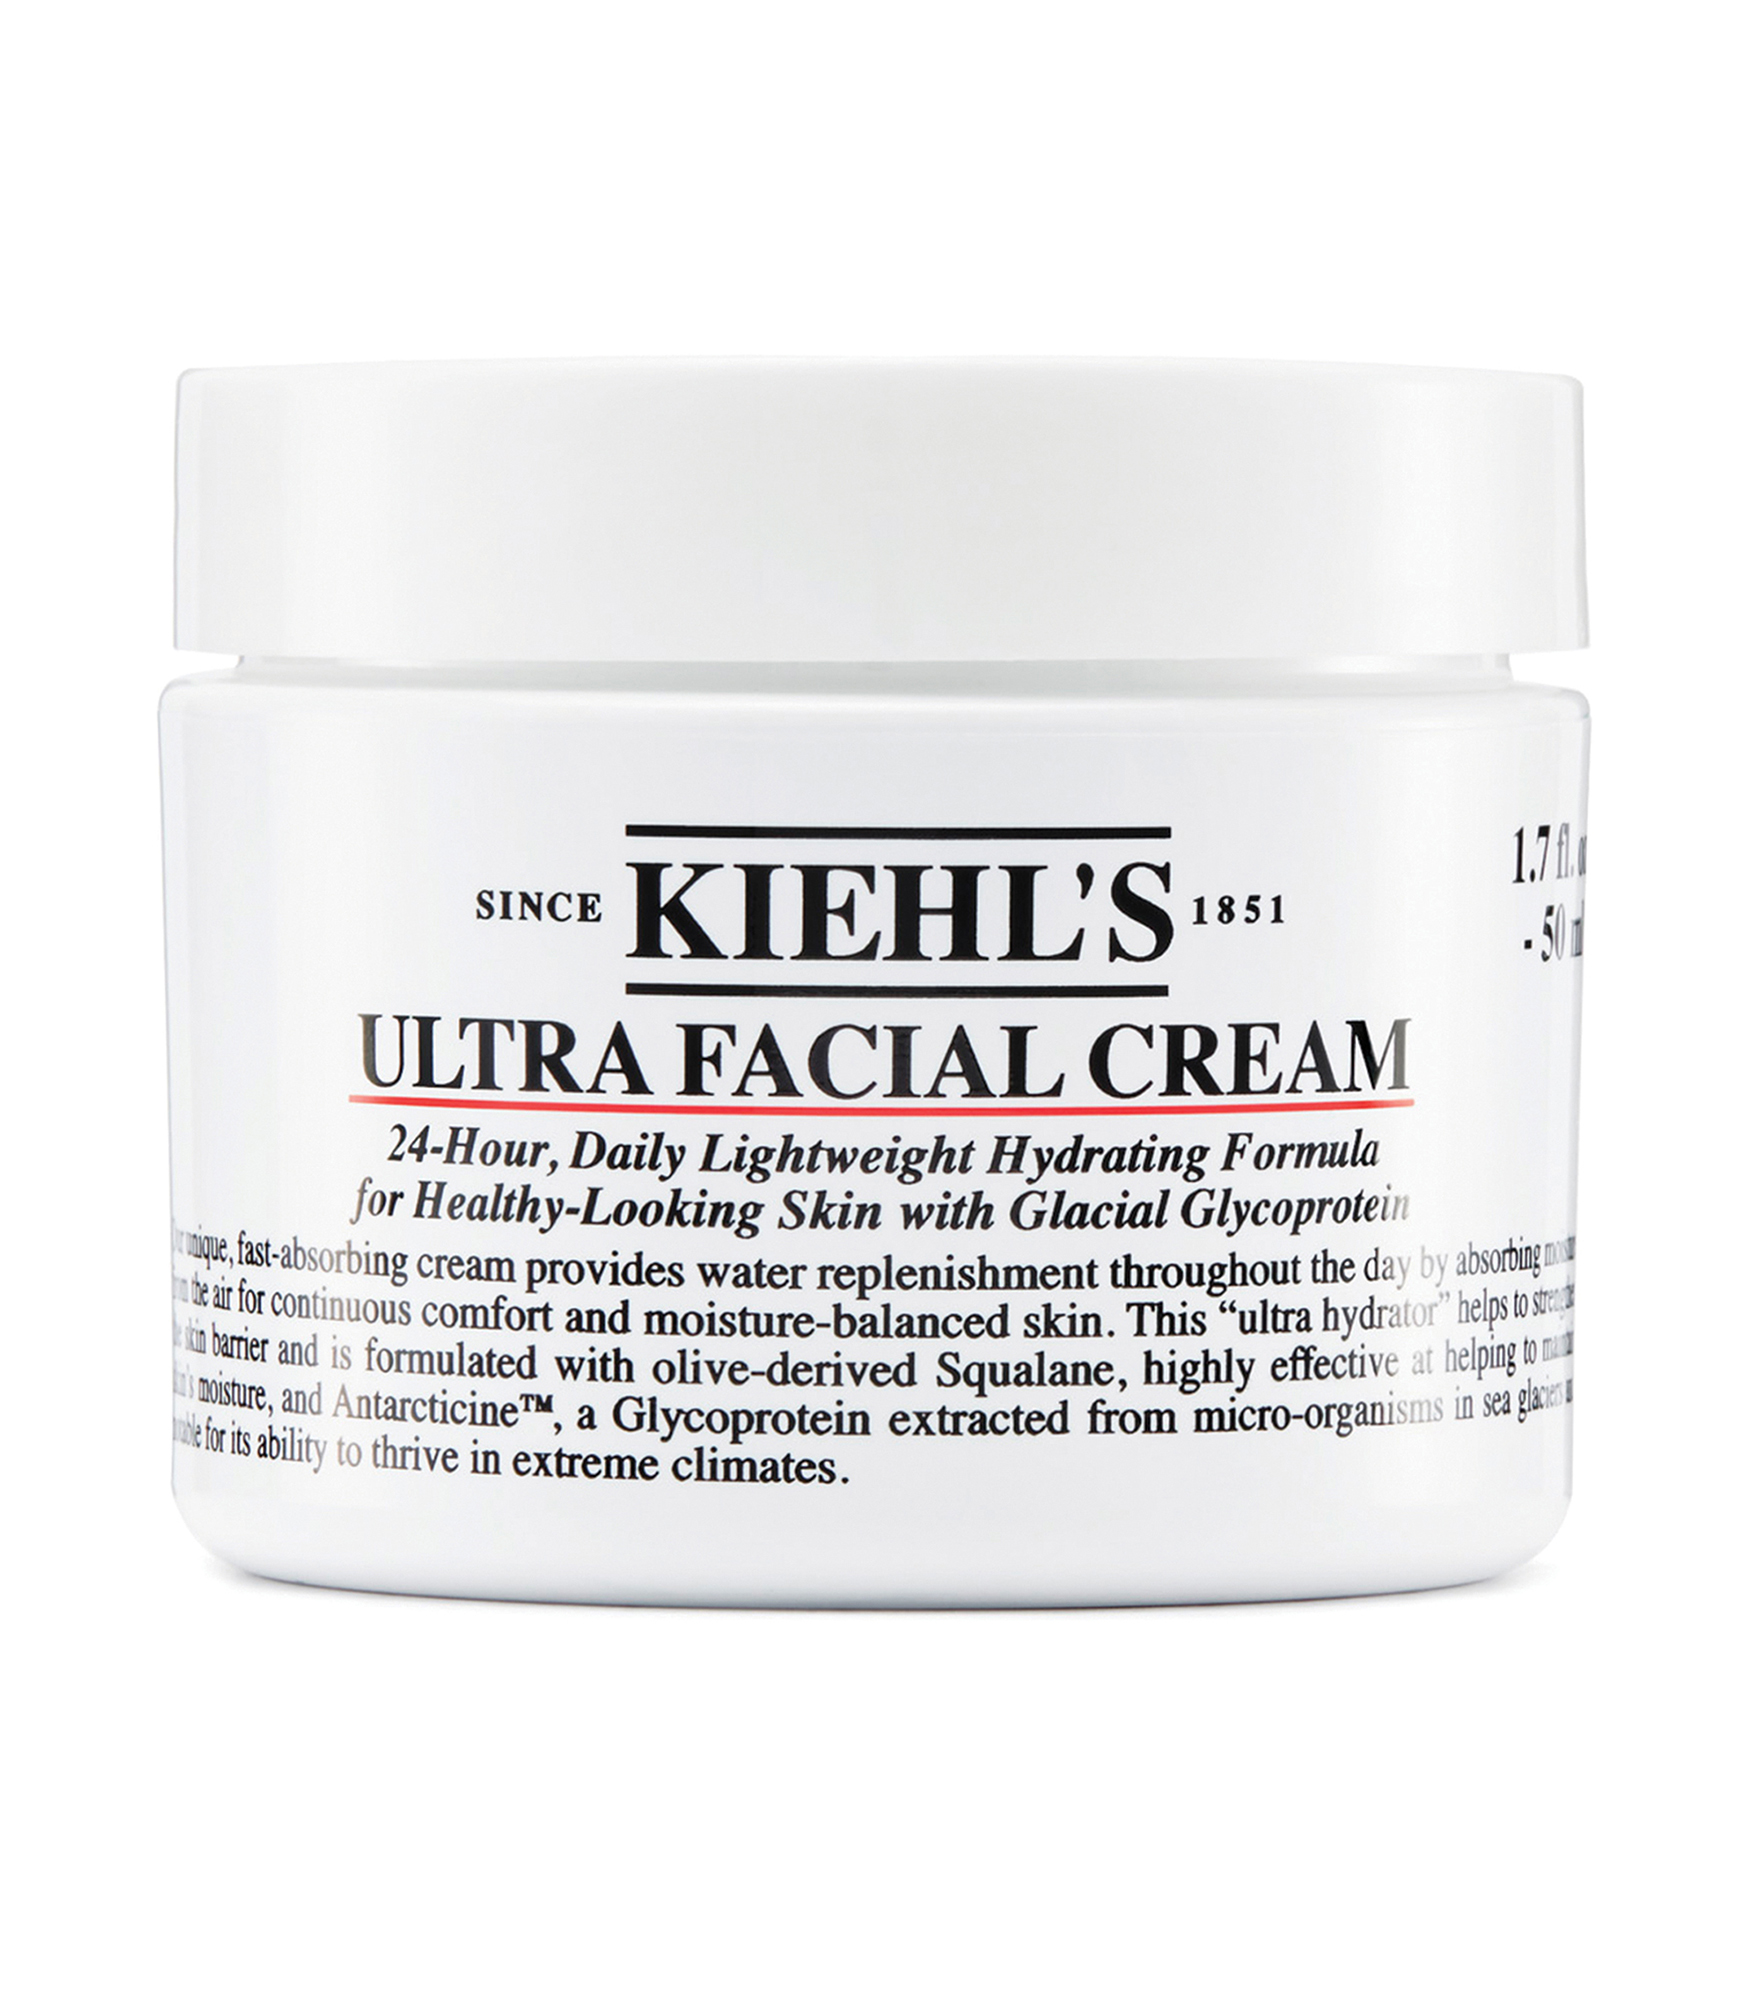 bd97f443795 Ultra Facial Cream Daily Facial Moisturizer - Kiehl s